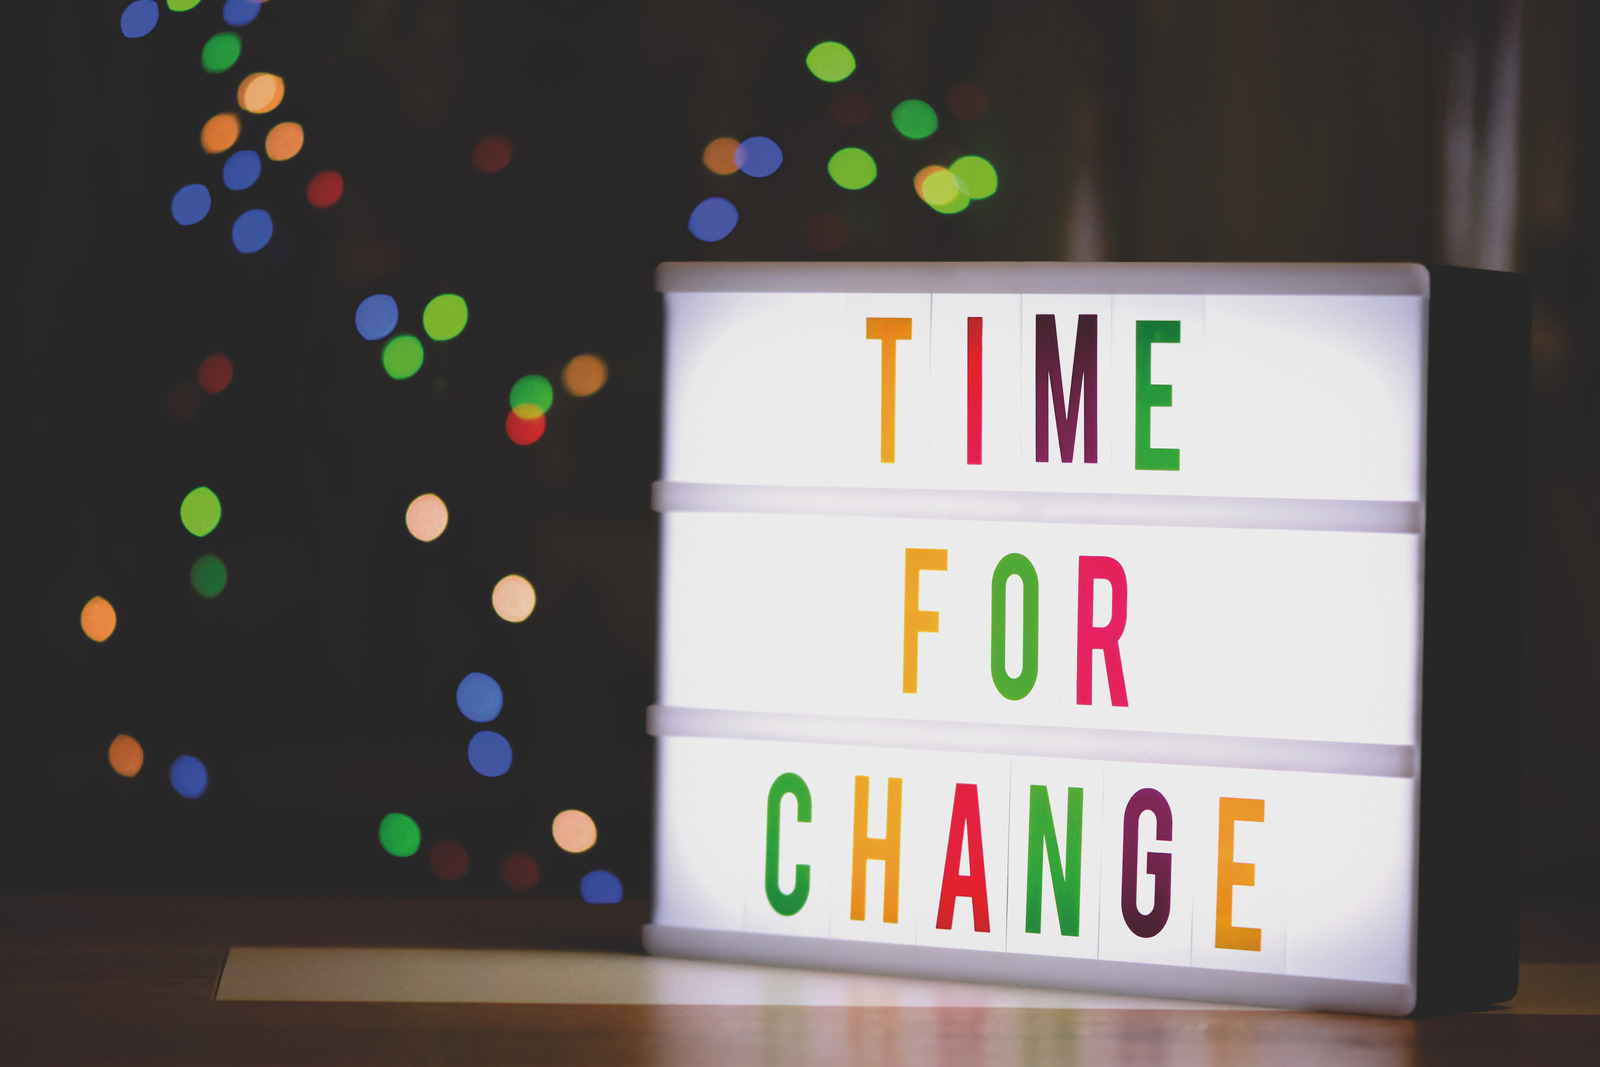 Foto von Alexas Fotos: https://www.canva.com/photos/MADyQ8Yt_6U-time-for-change-sign-with-led-light/